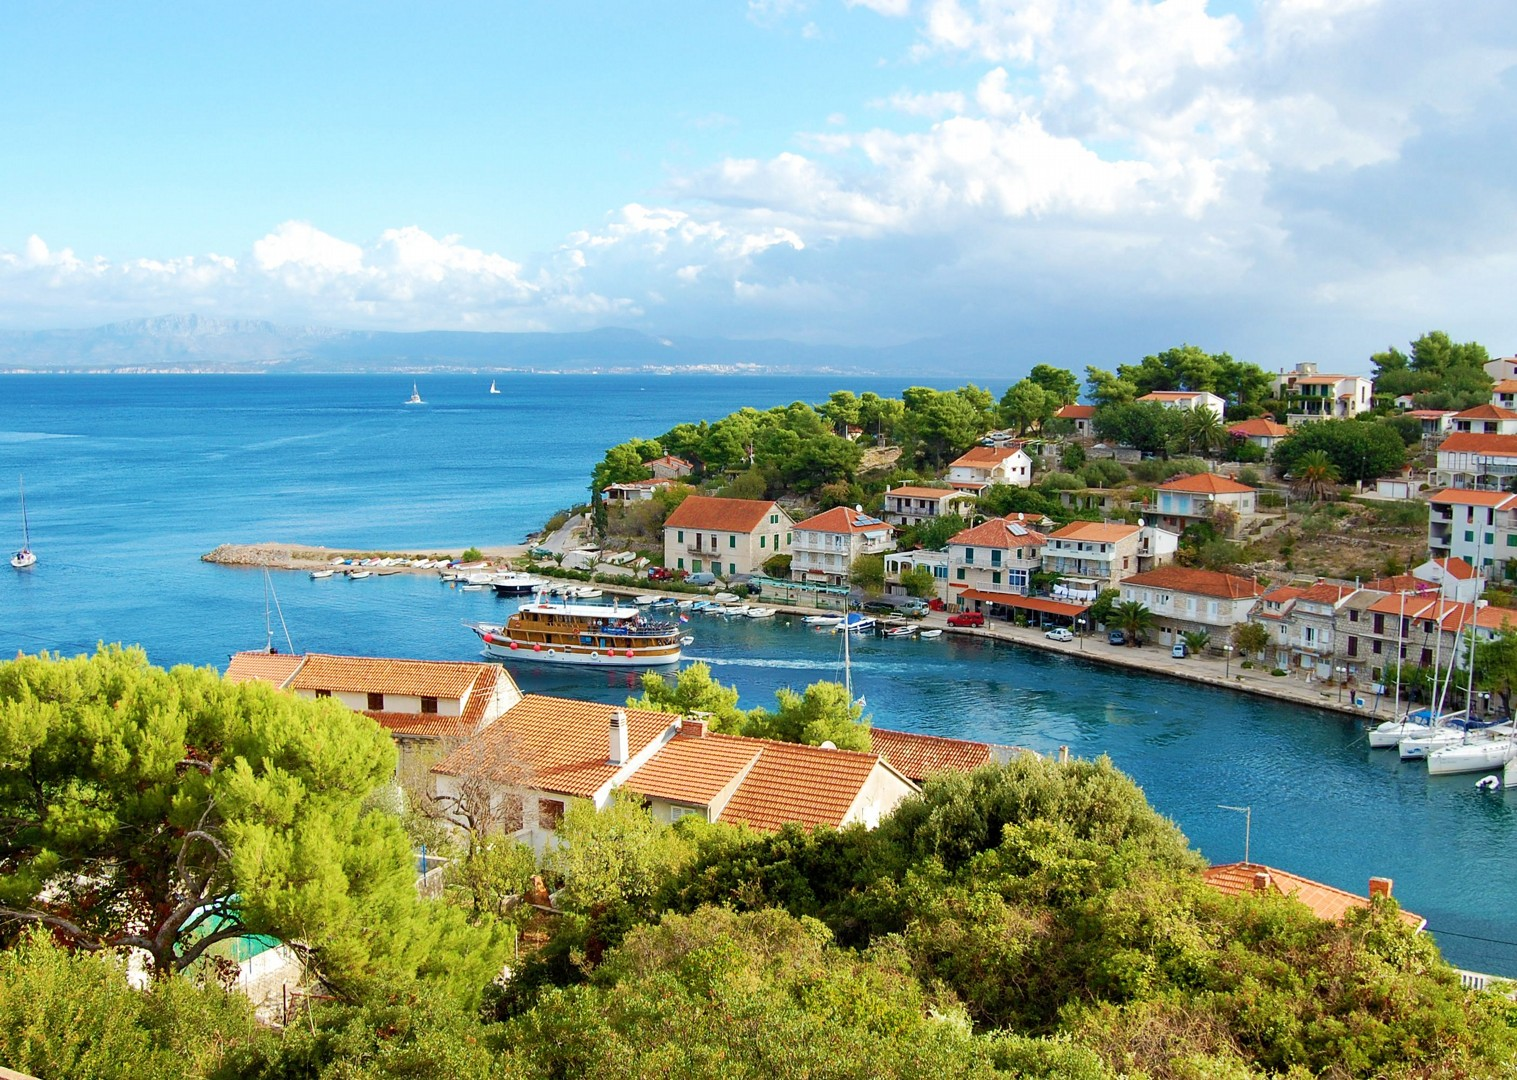 cycle-along-dalmatian-coastline.jpg - Croatia - Dalmatian National Parks and Islands - Bike and Boat Holiday - Leisure Cycling